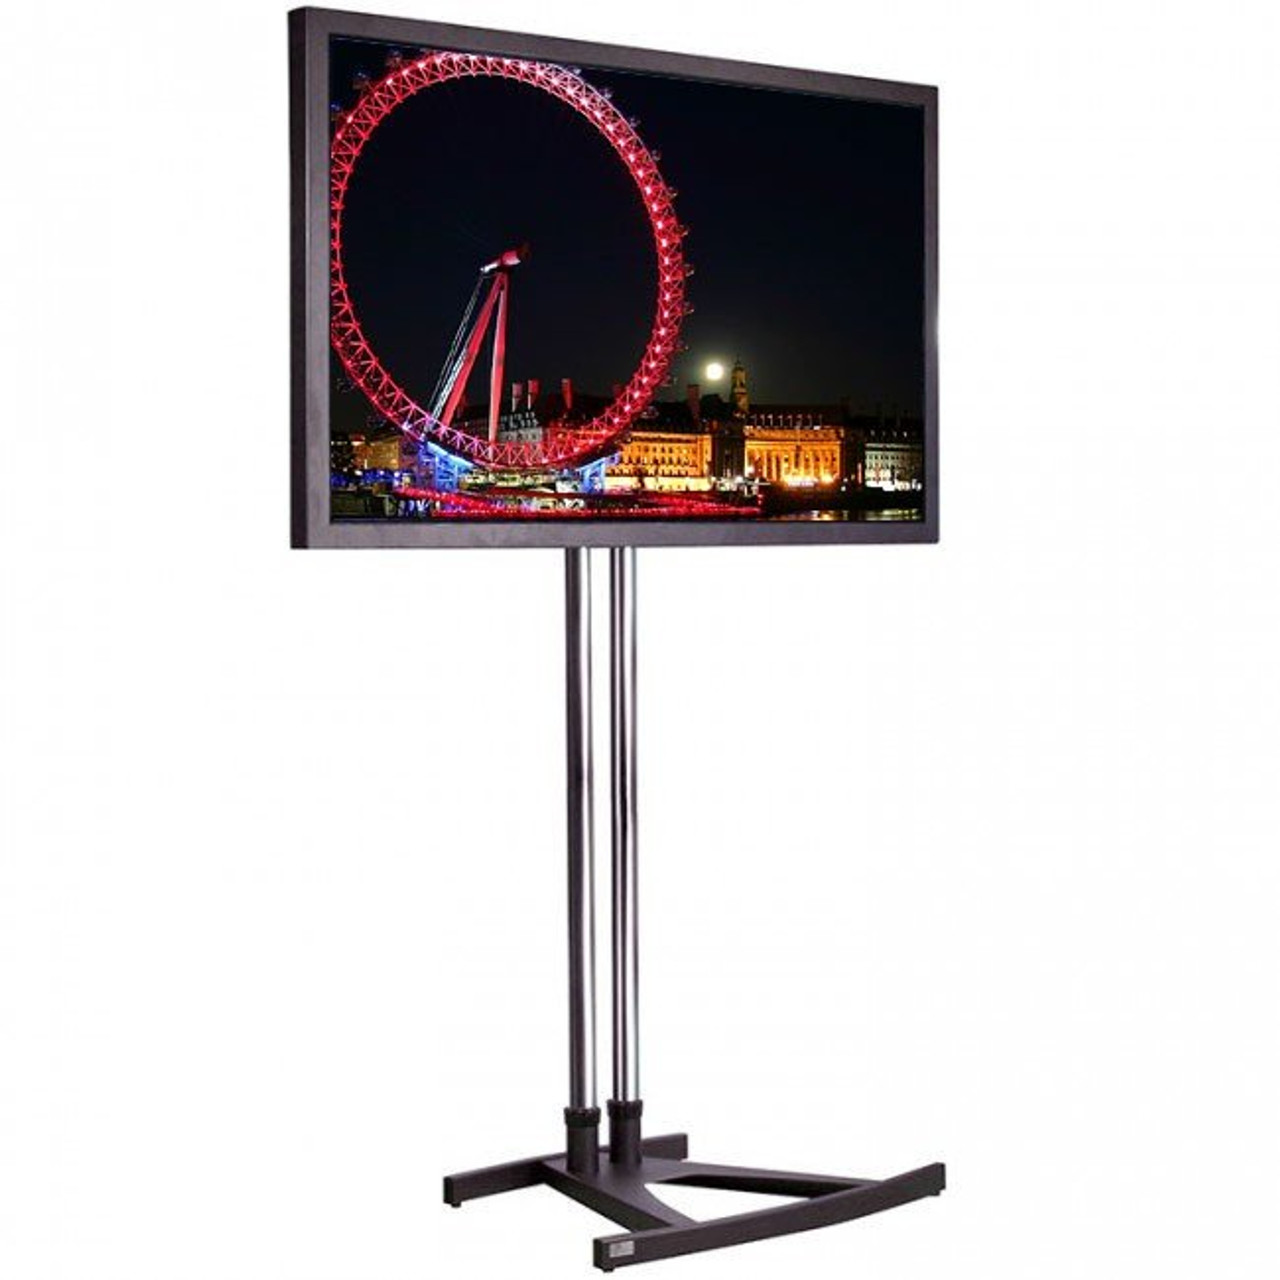 Expo Exhibition Stands Hire : Exhibition stand hire readybooth fixed price exhibition stands